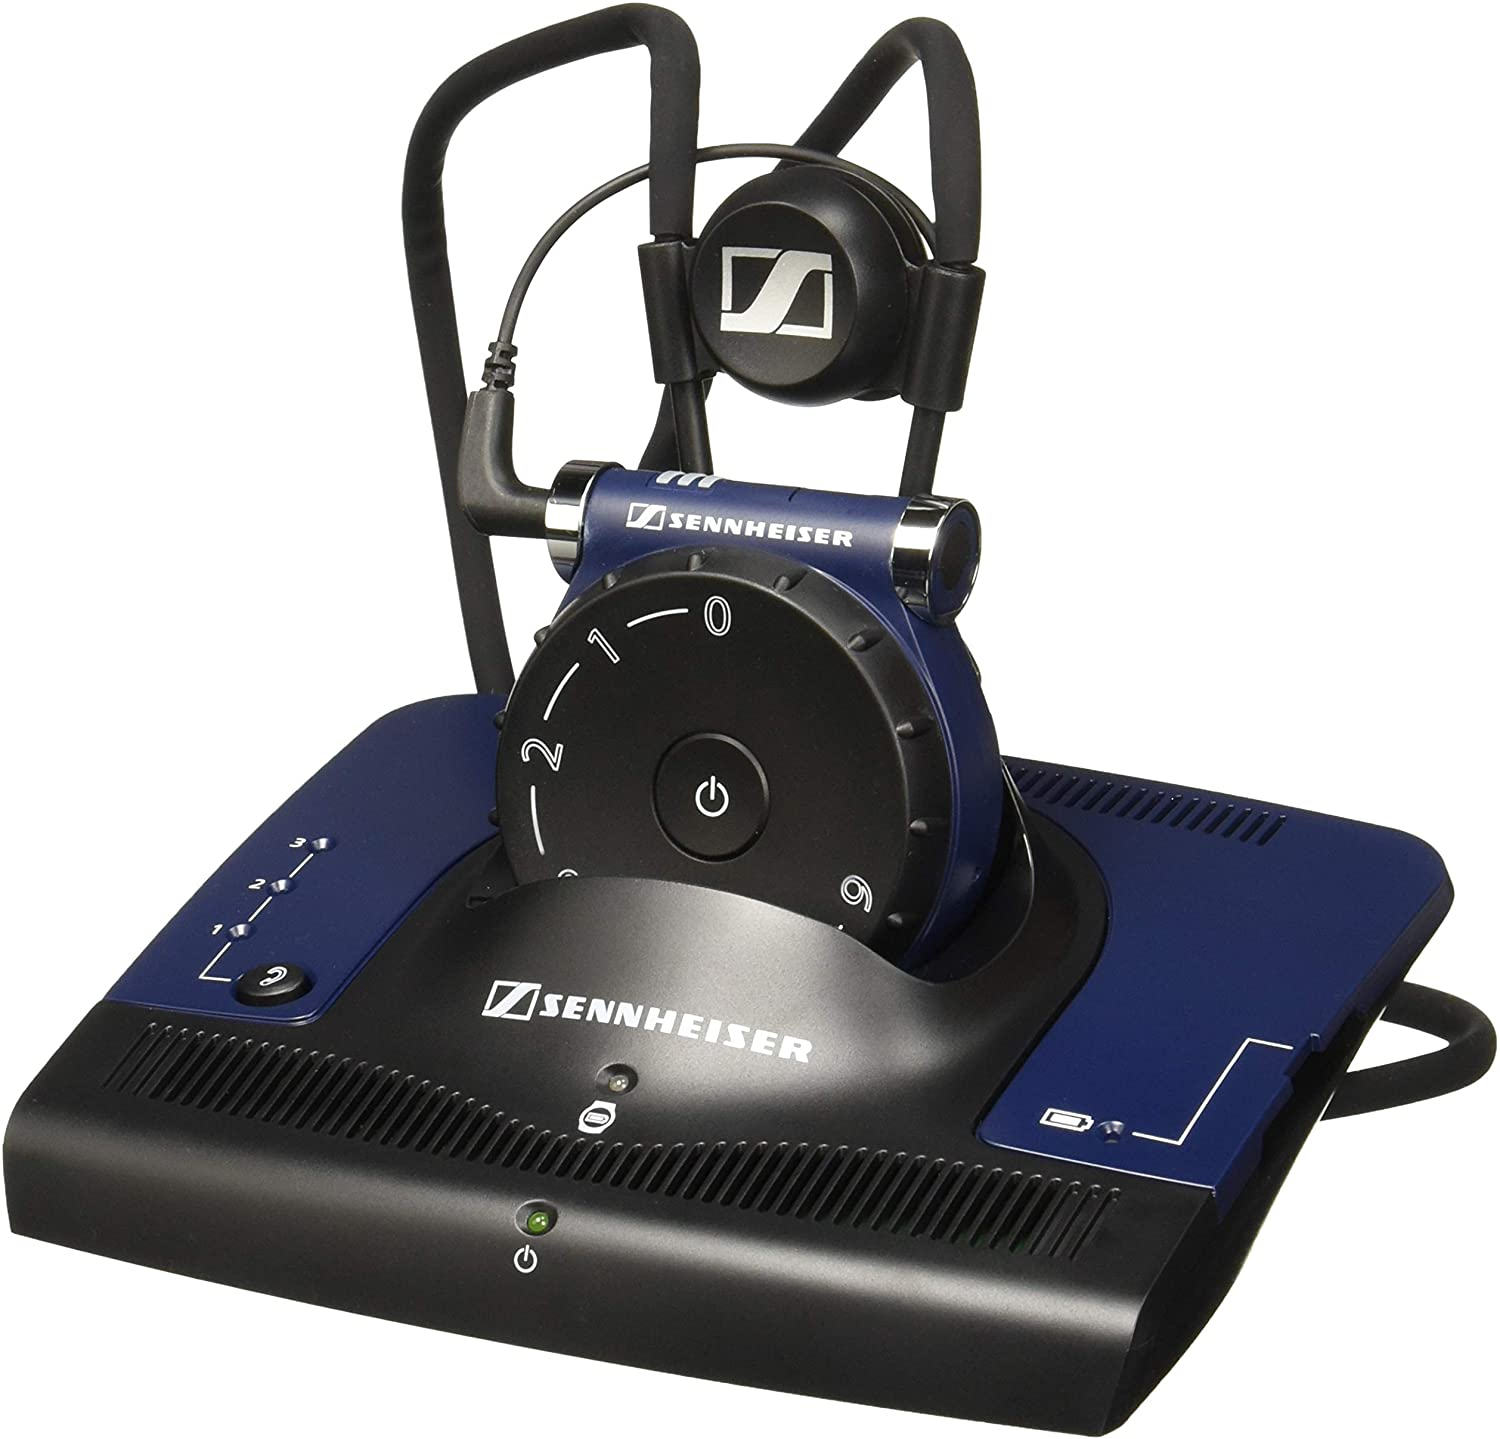 SennheiserSET840-S Wireless Assistive Listening System with Body Pack Receiver